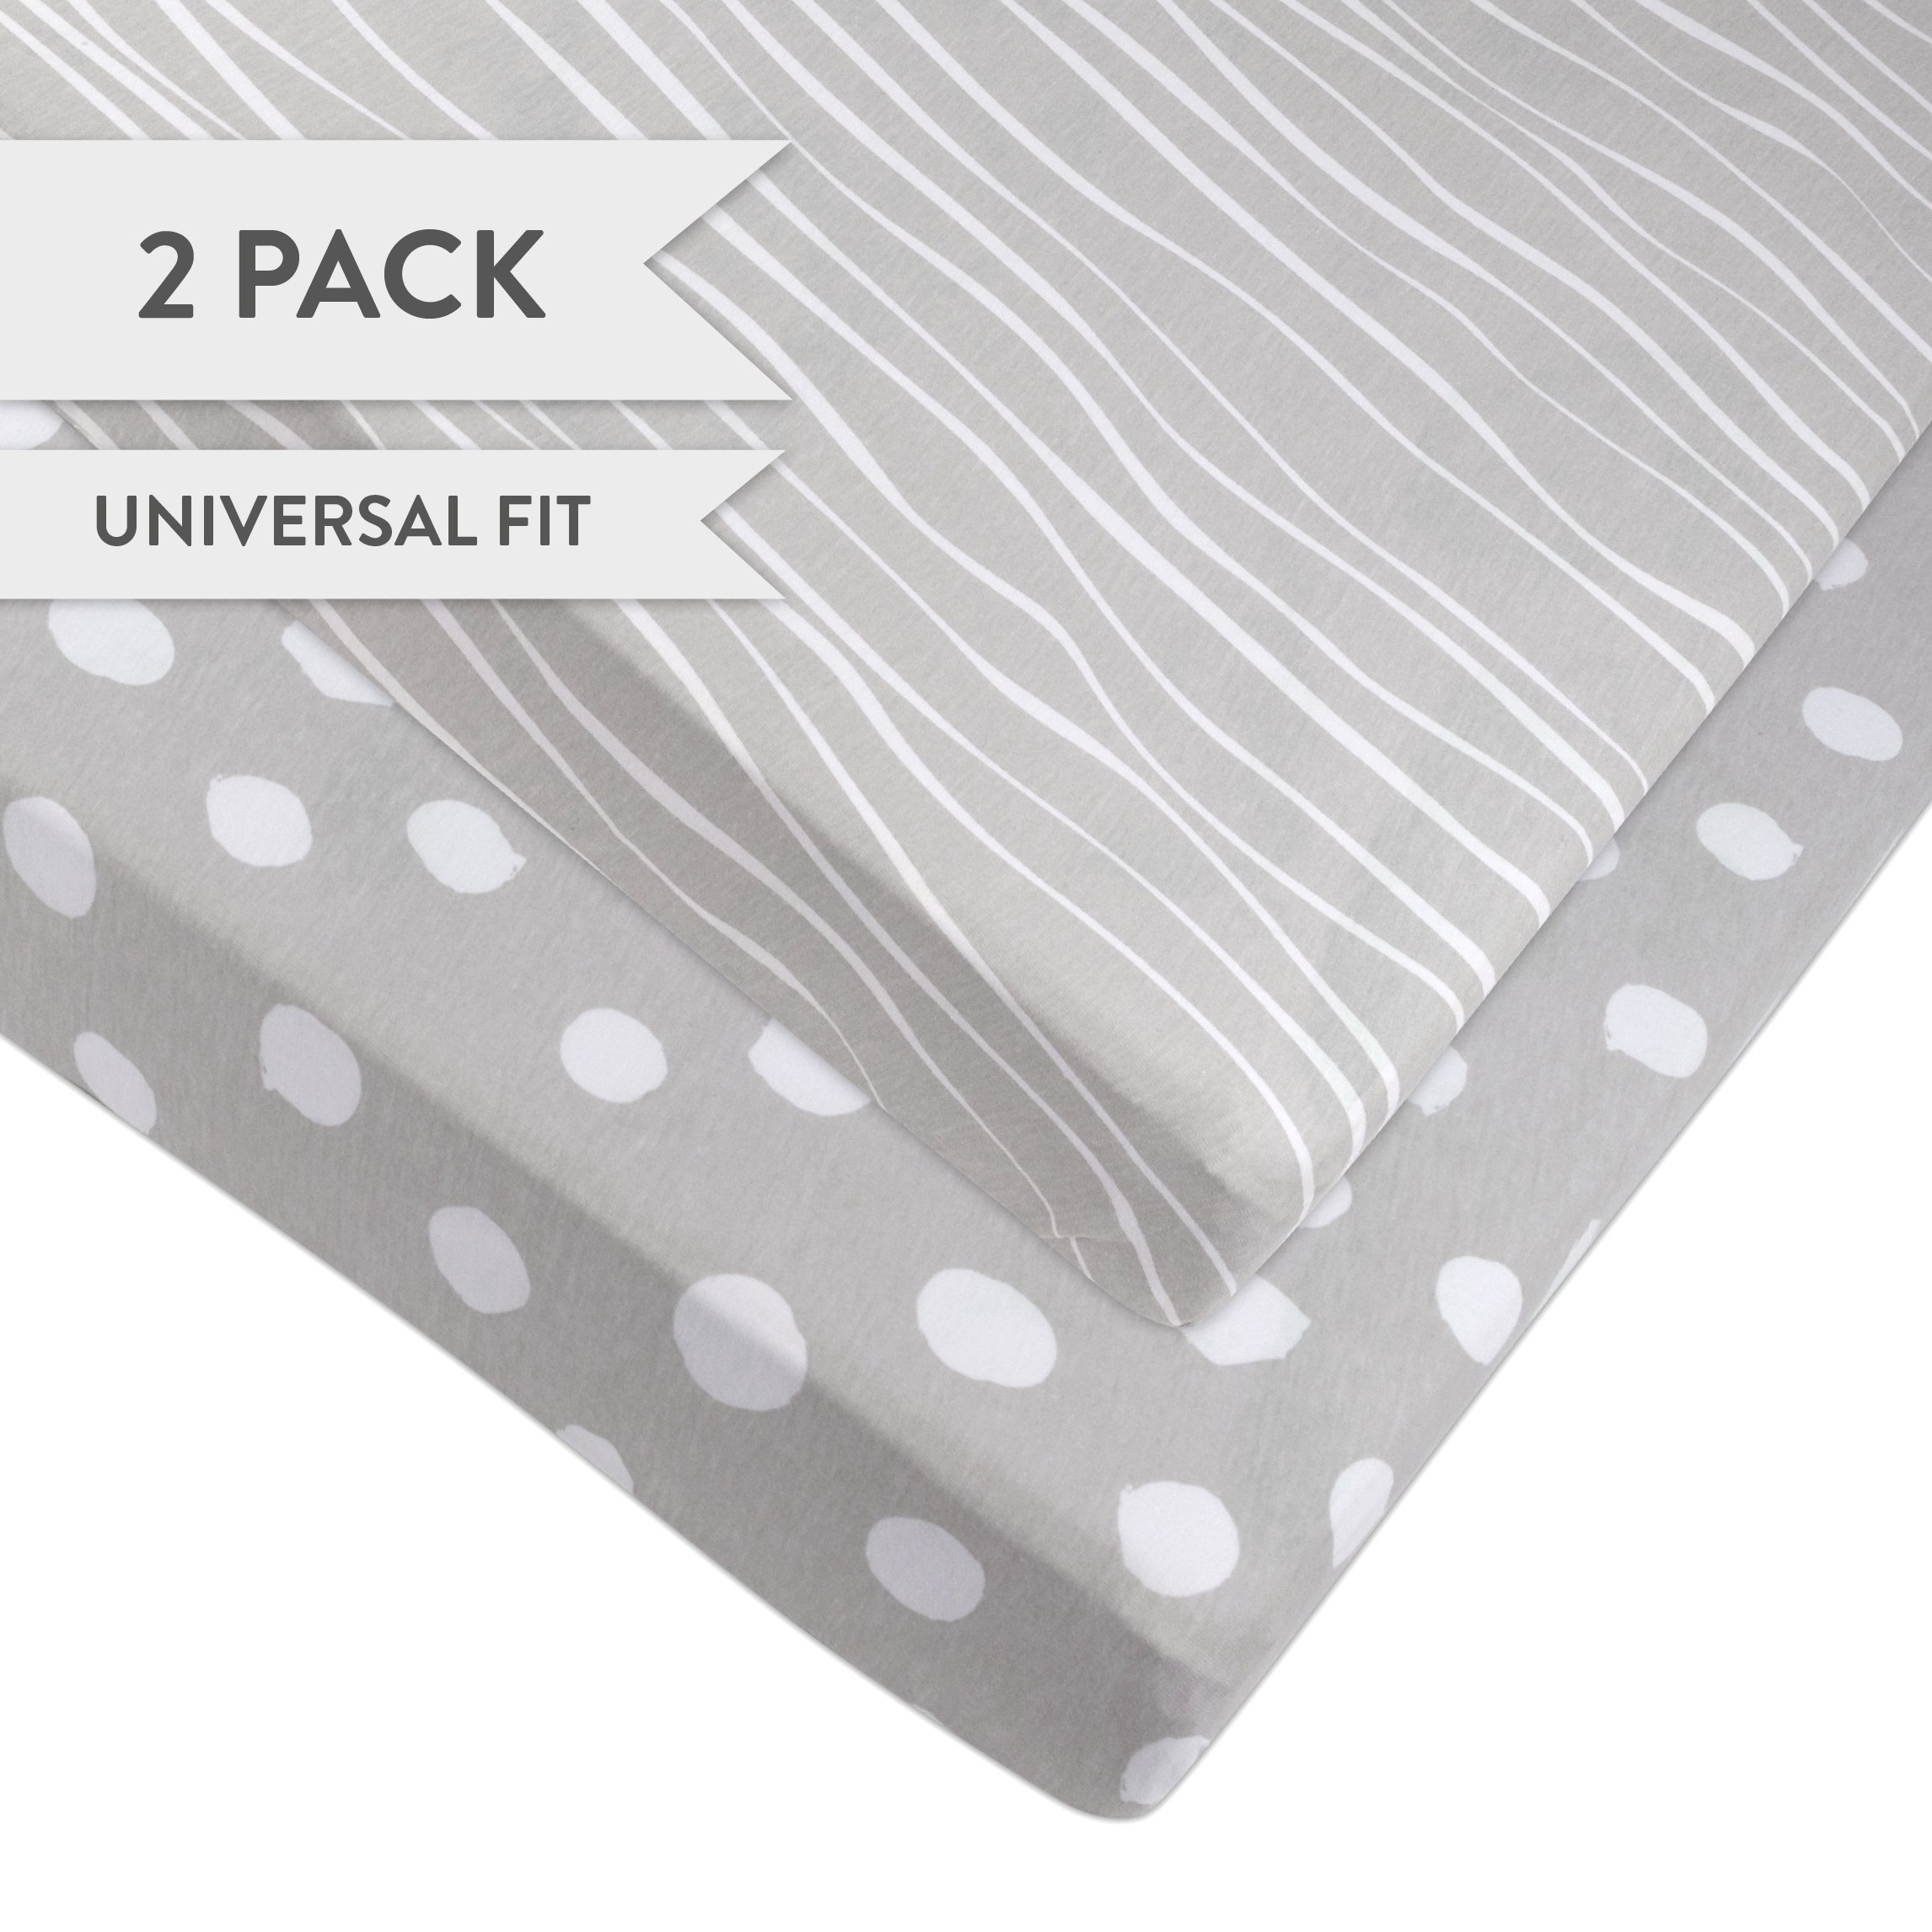 Pack N Play Portable Crib Sheet Set 100% Jersey Cotton 2 Pack - Grey and White Abstract Stripes and Dots